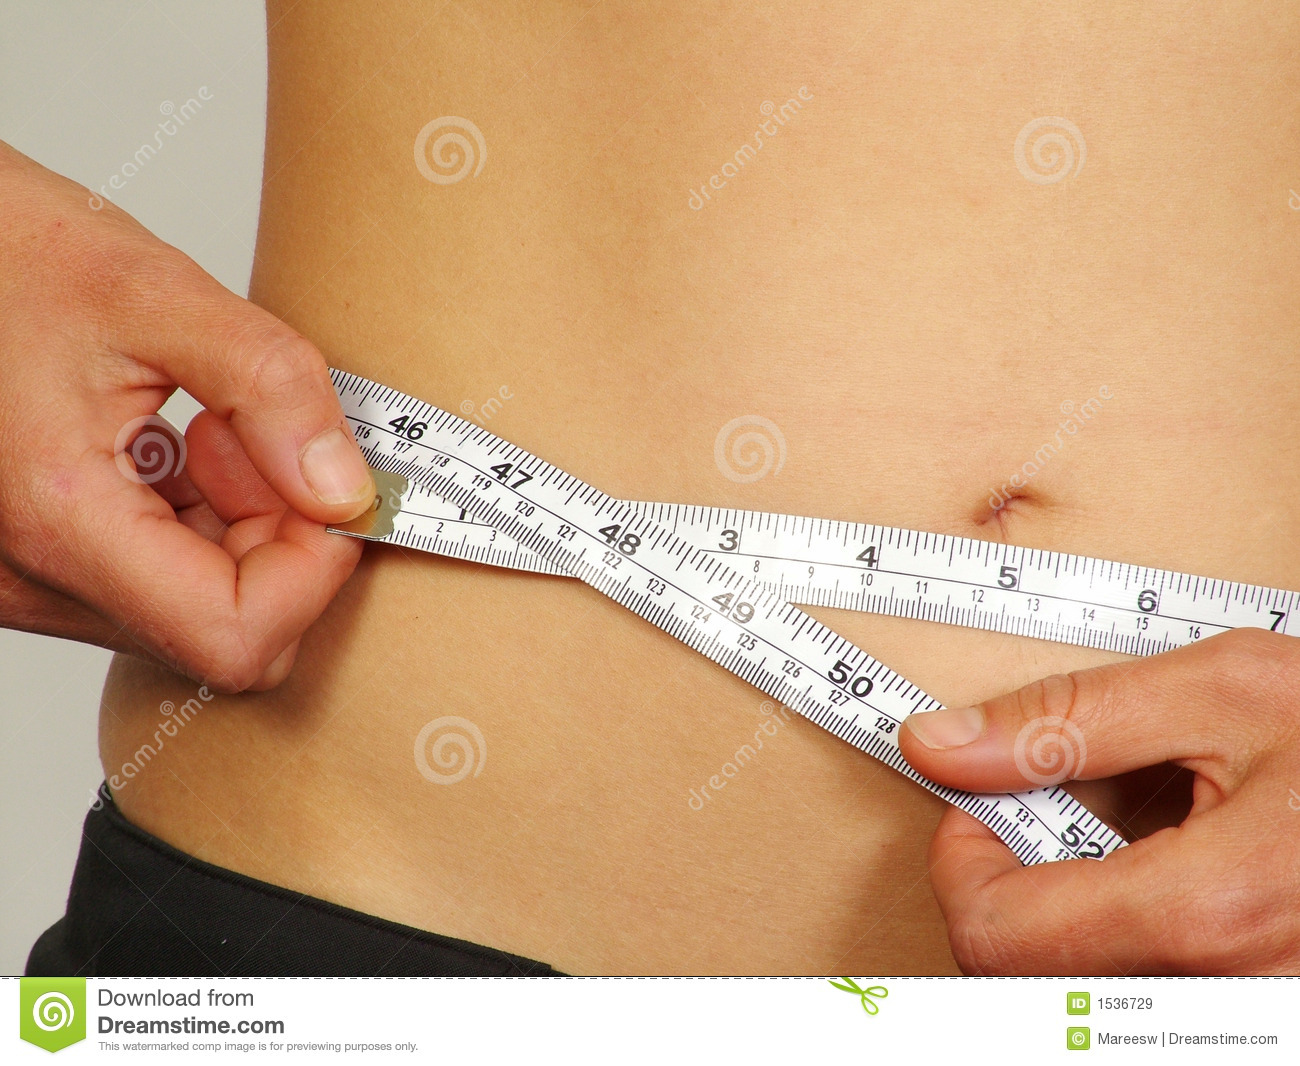 waist measurement royalty free stock images